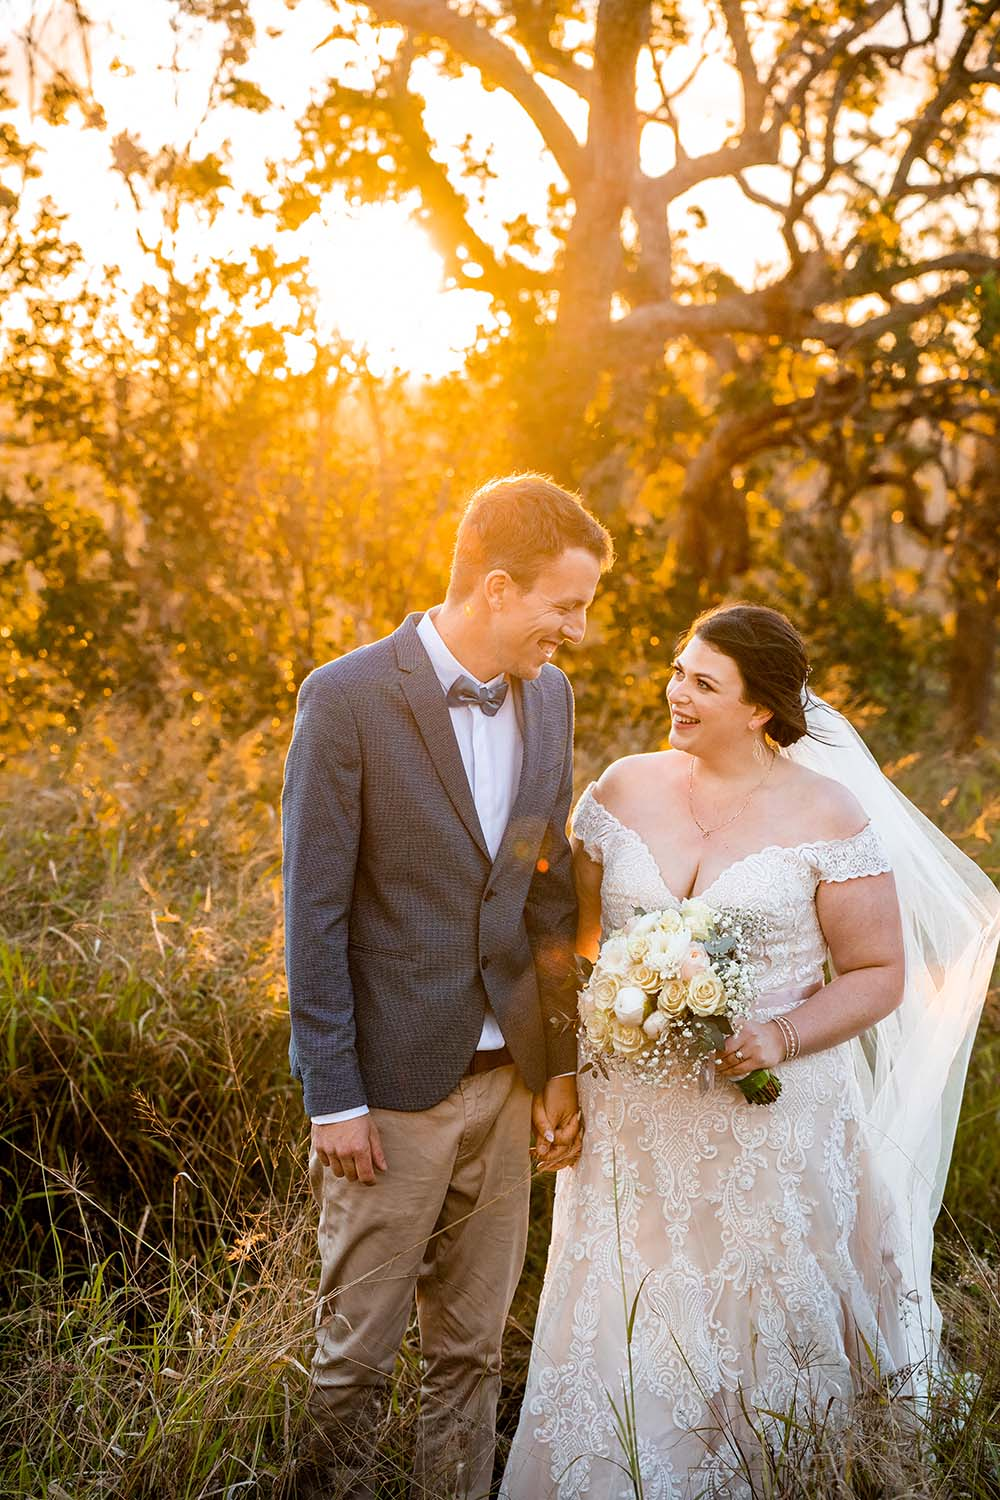 Wedding Photography - Bride and Groom in field at sunset